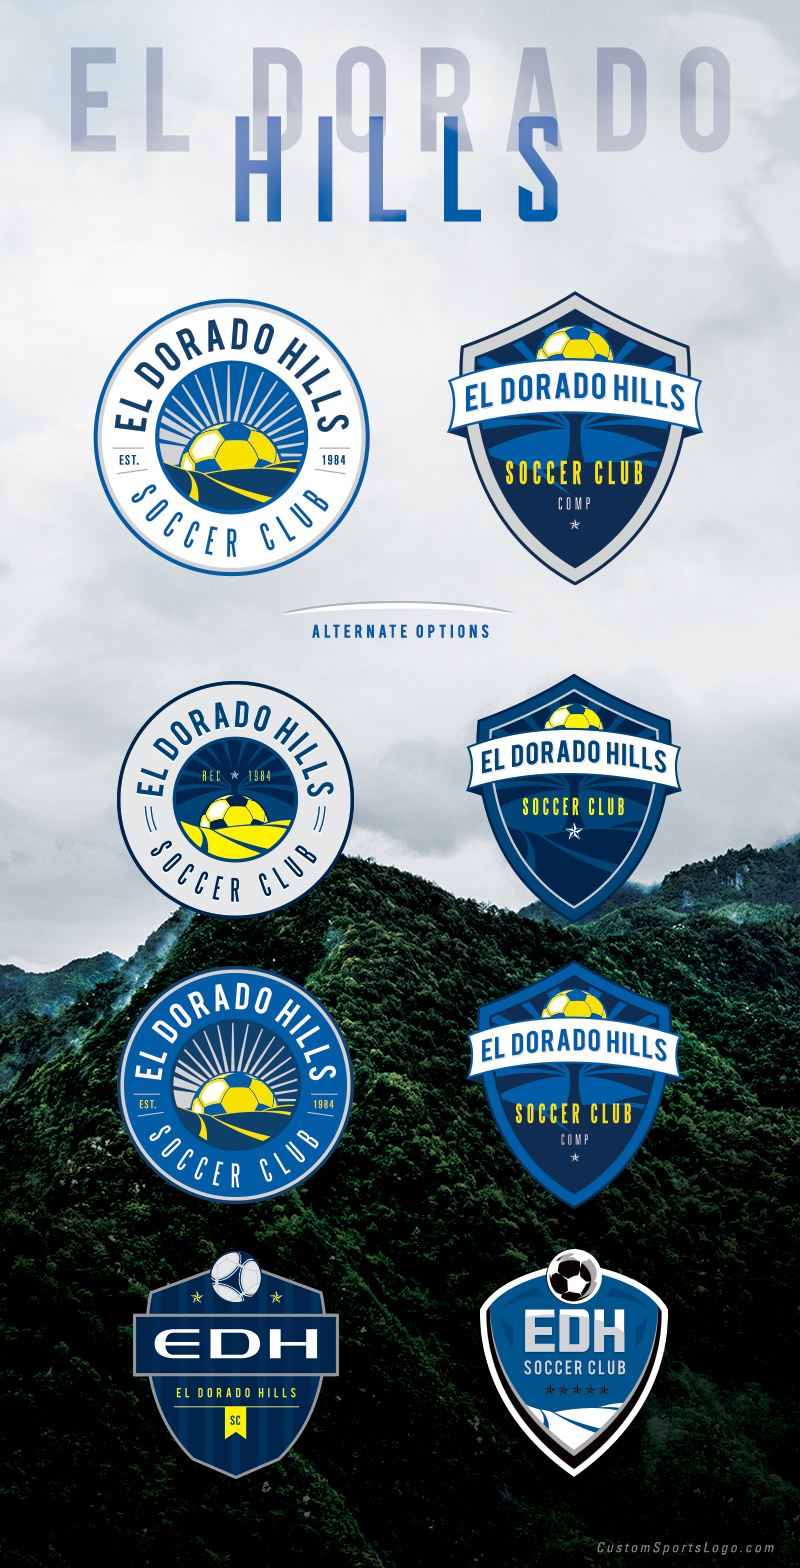 custom-soccer-logo-design-options-for-el-dorado-hills-soccer.jpg